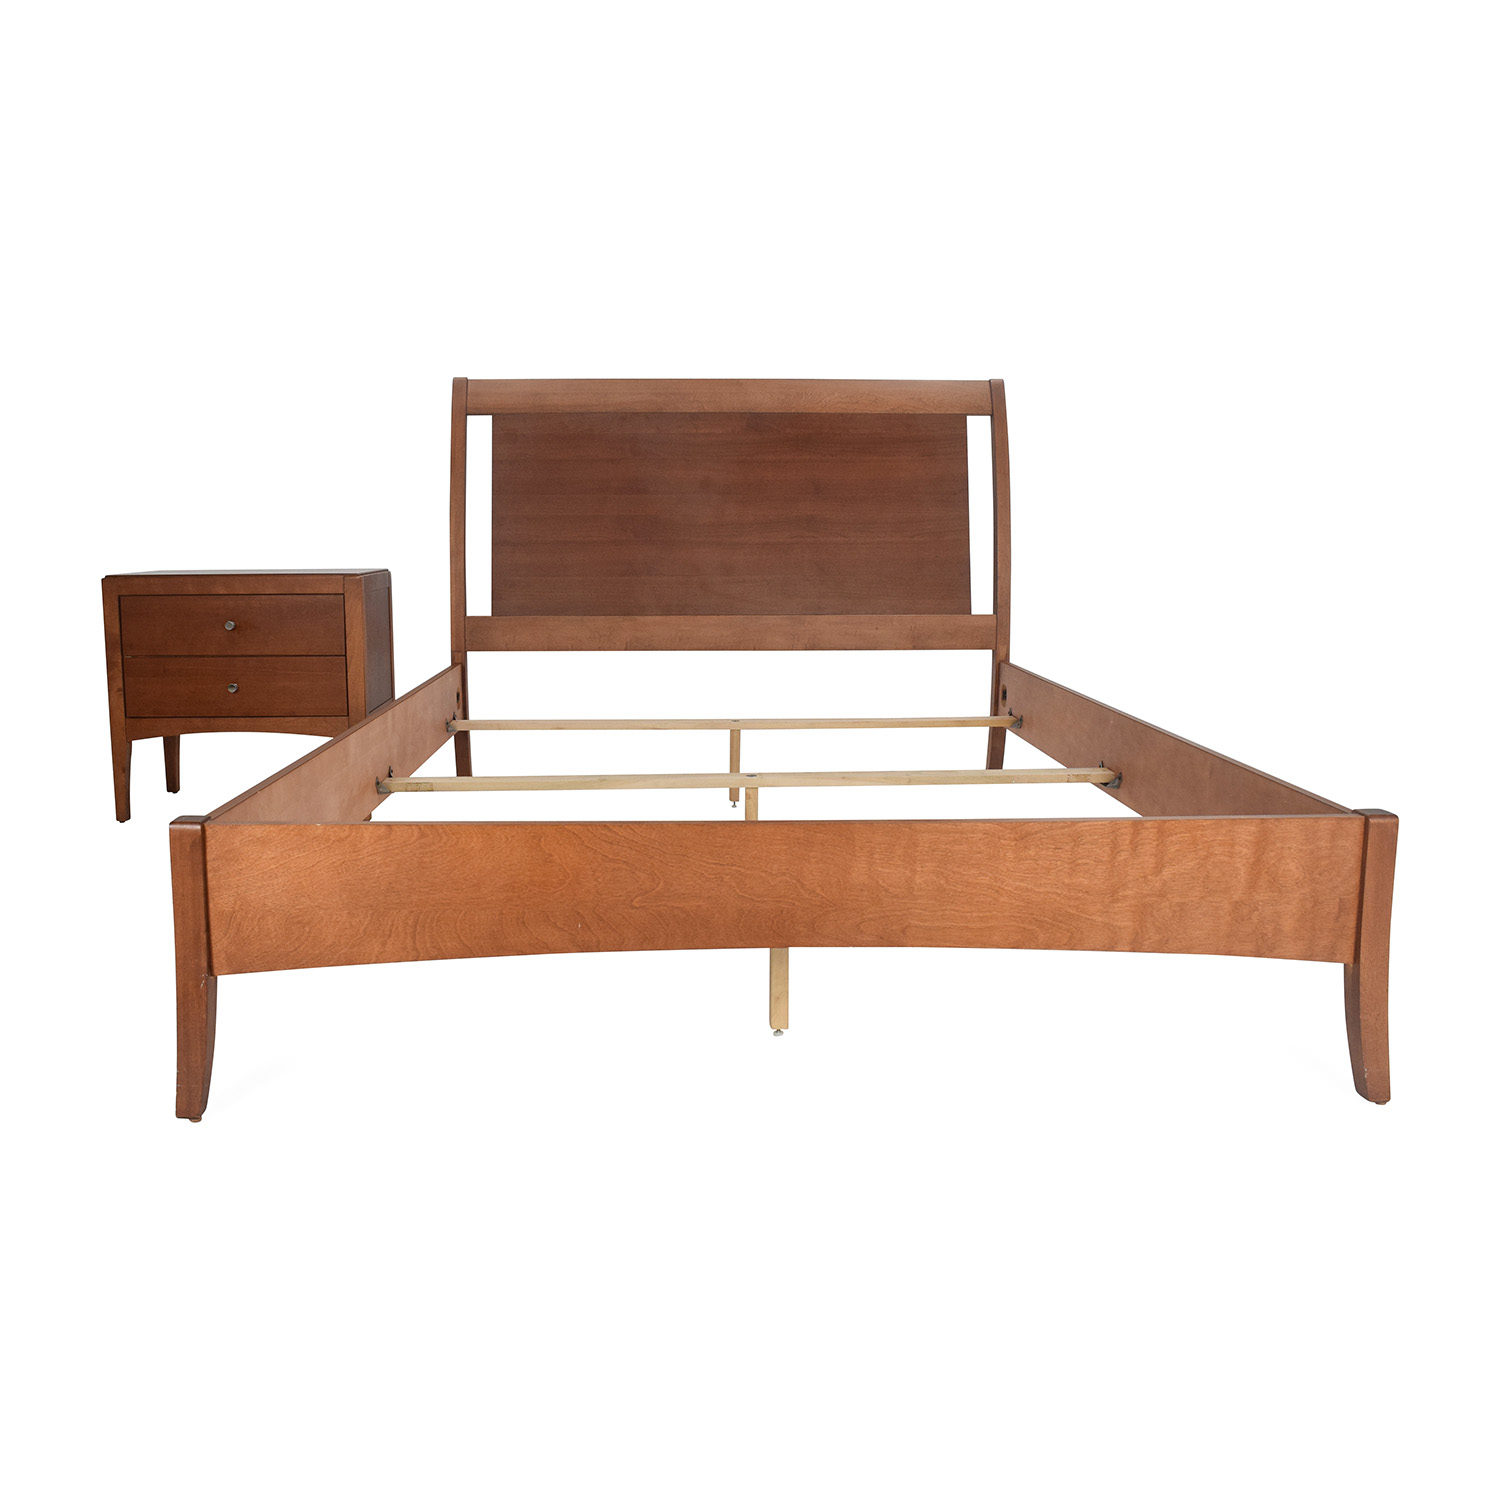 buy macys bed frame and matching side table macys